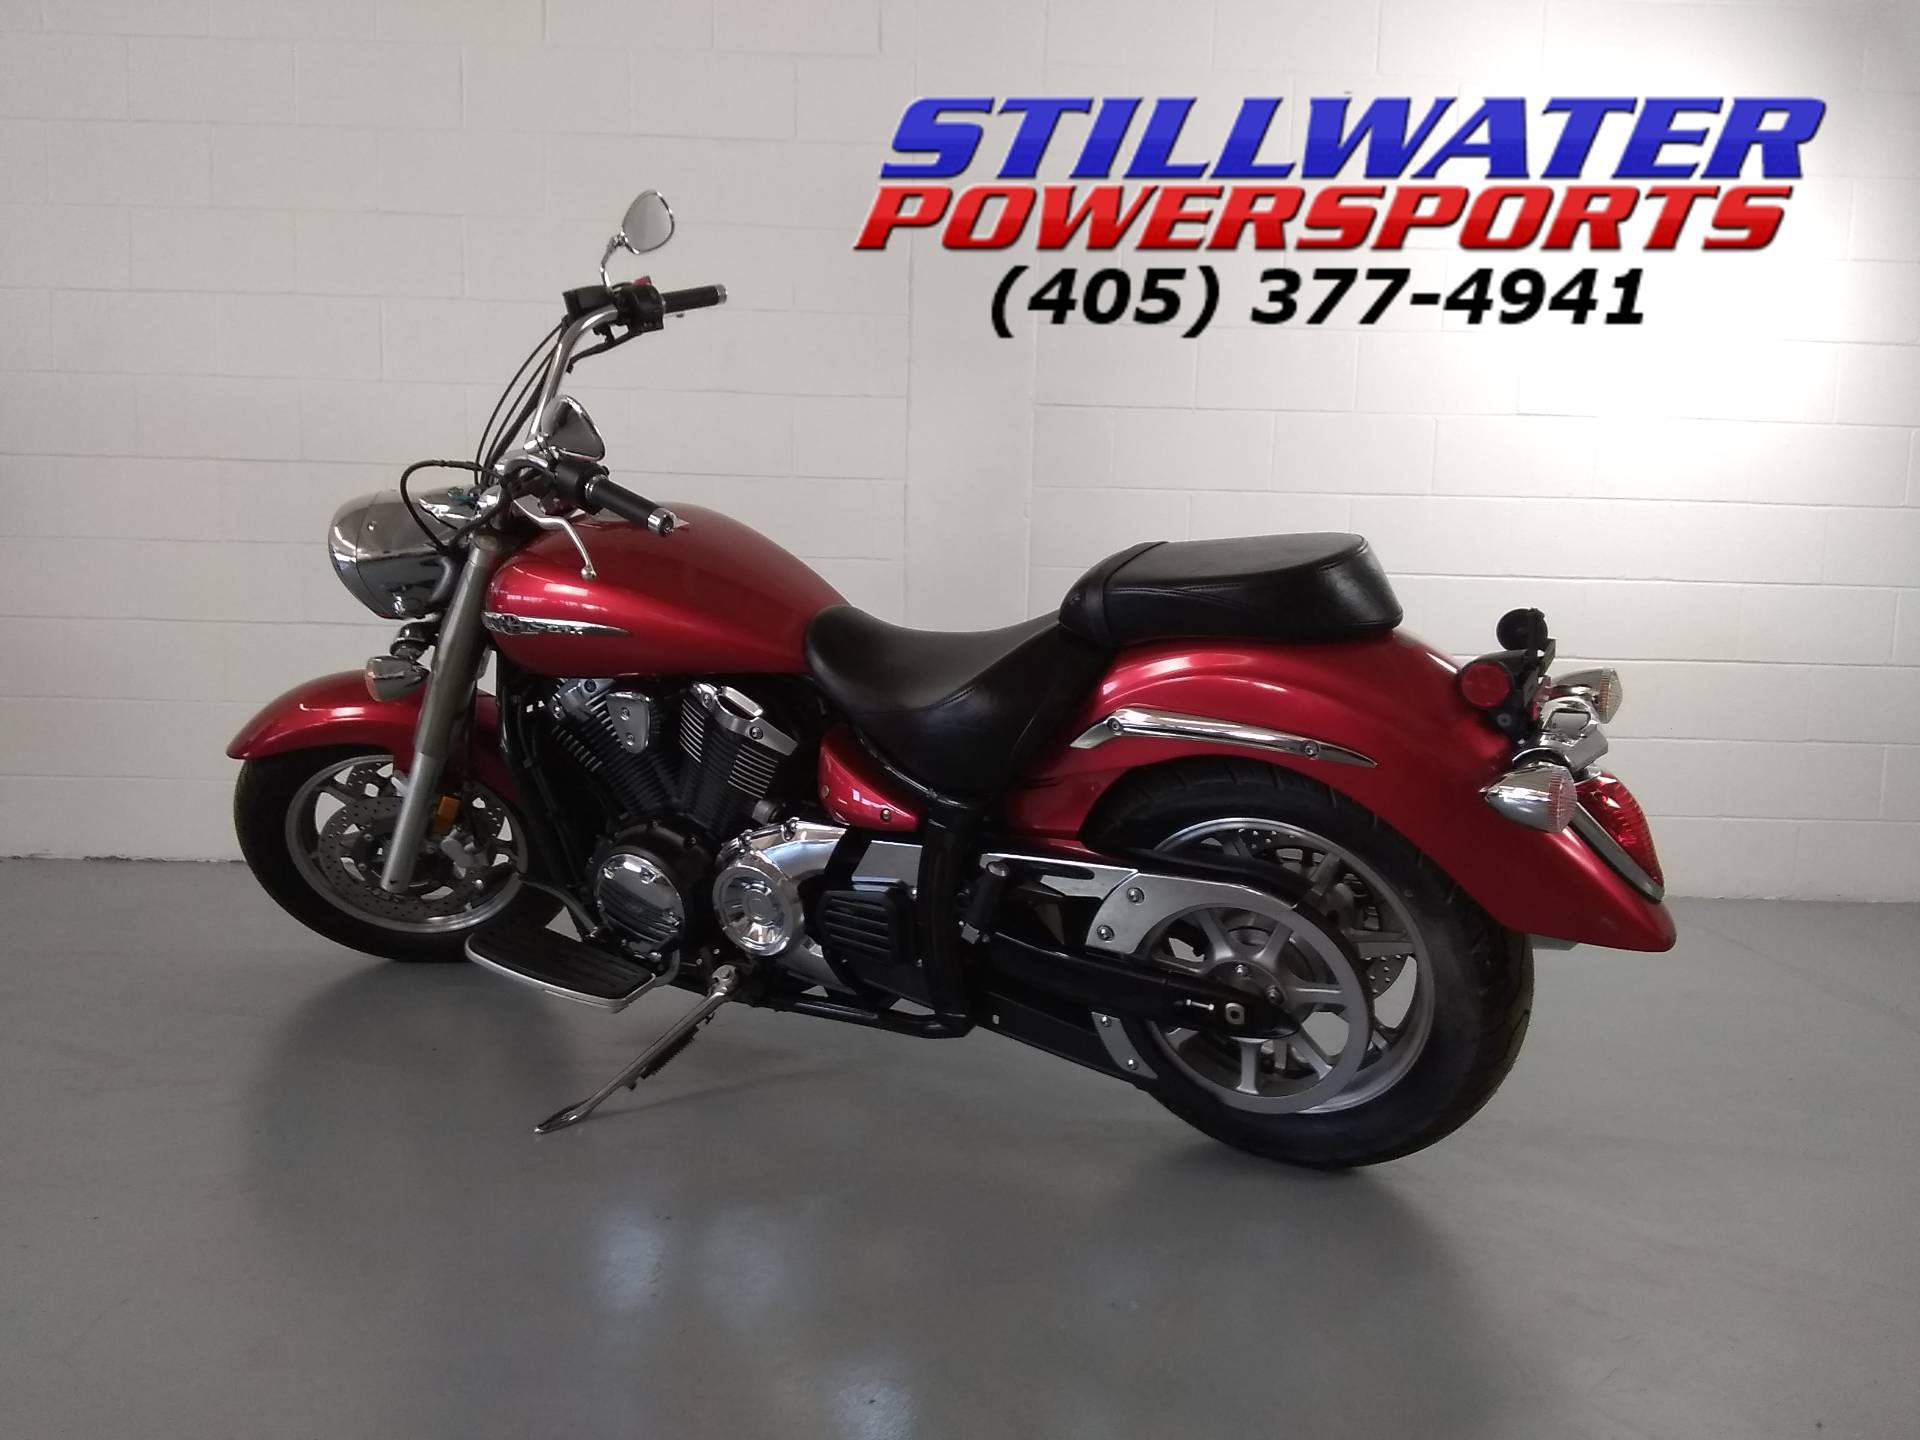 2012 Yamaha V Star 1300 in Stillwater, Oklahoma - Photo 2